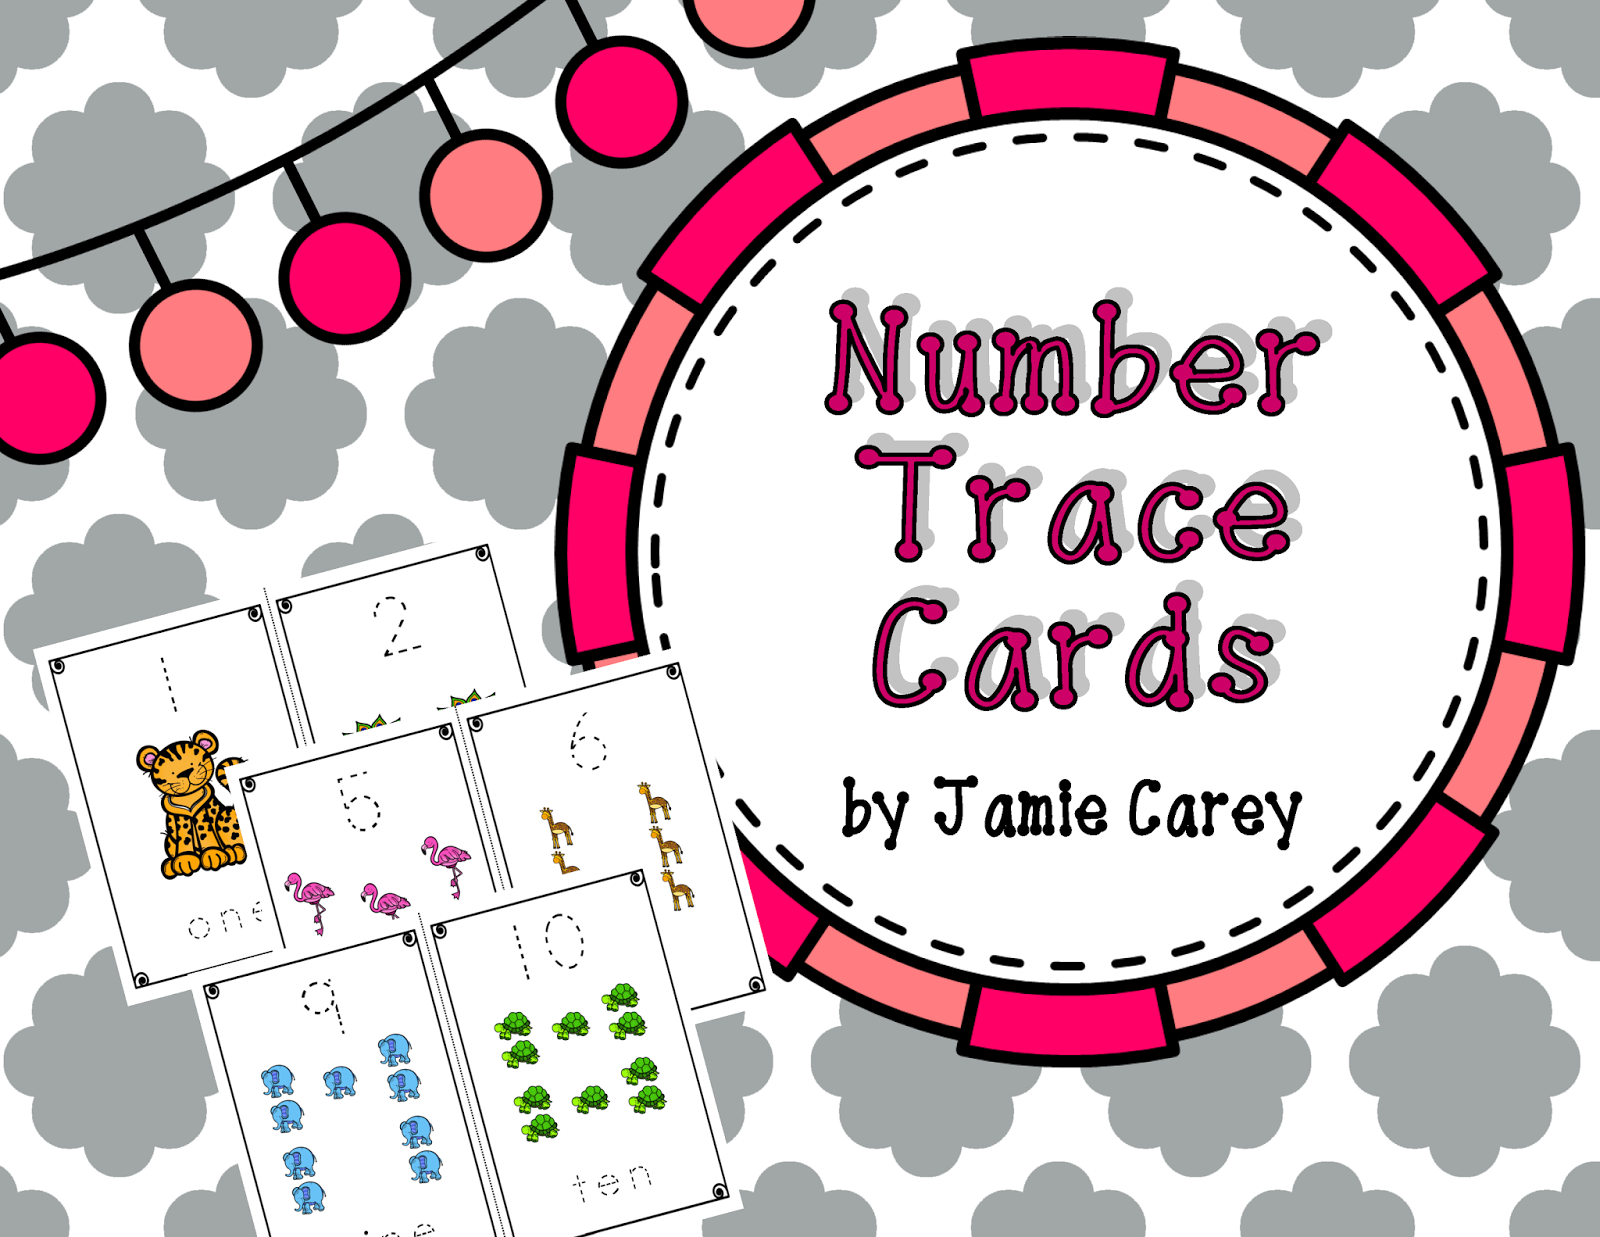 http://www.teacherspayteachers.com/Product/Number-Trace-Cards-1375936